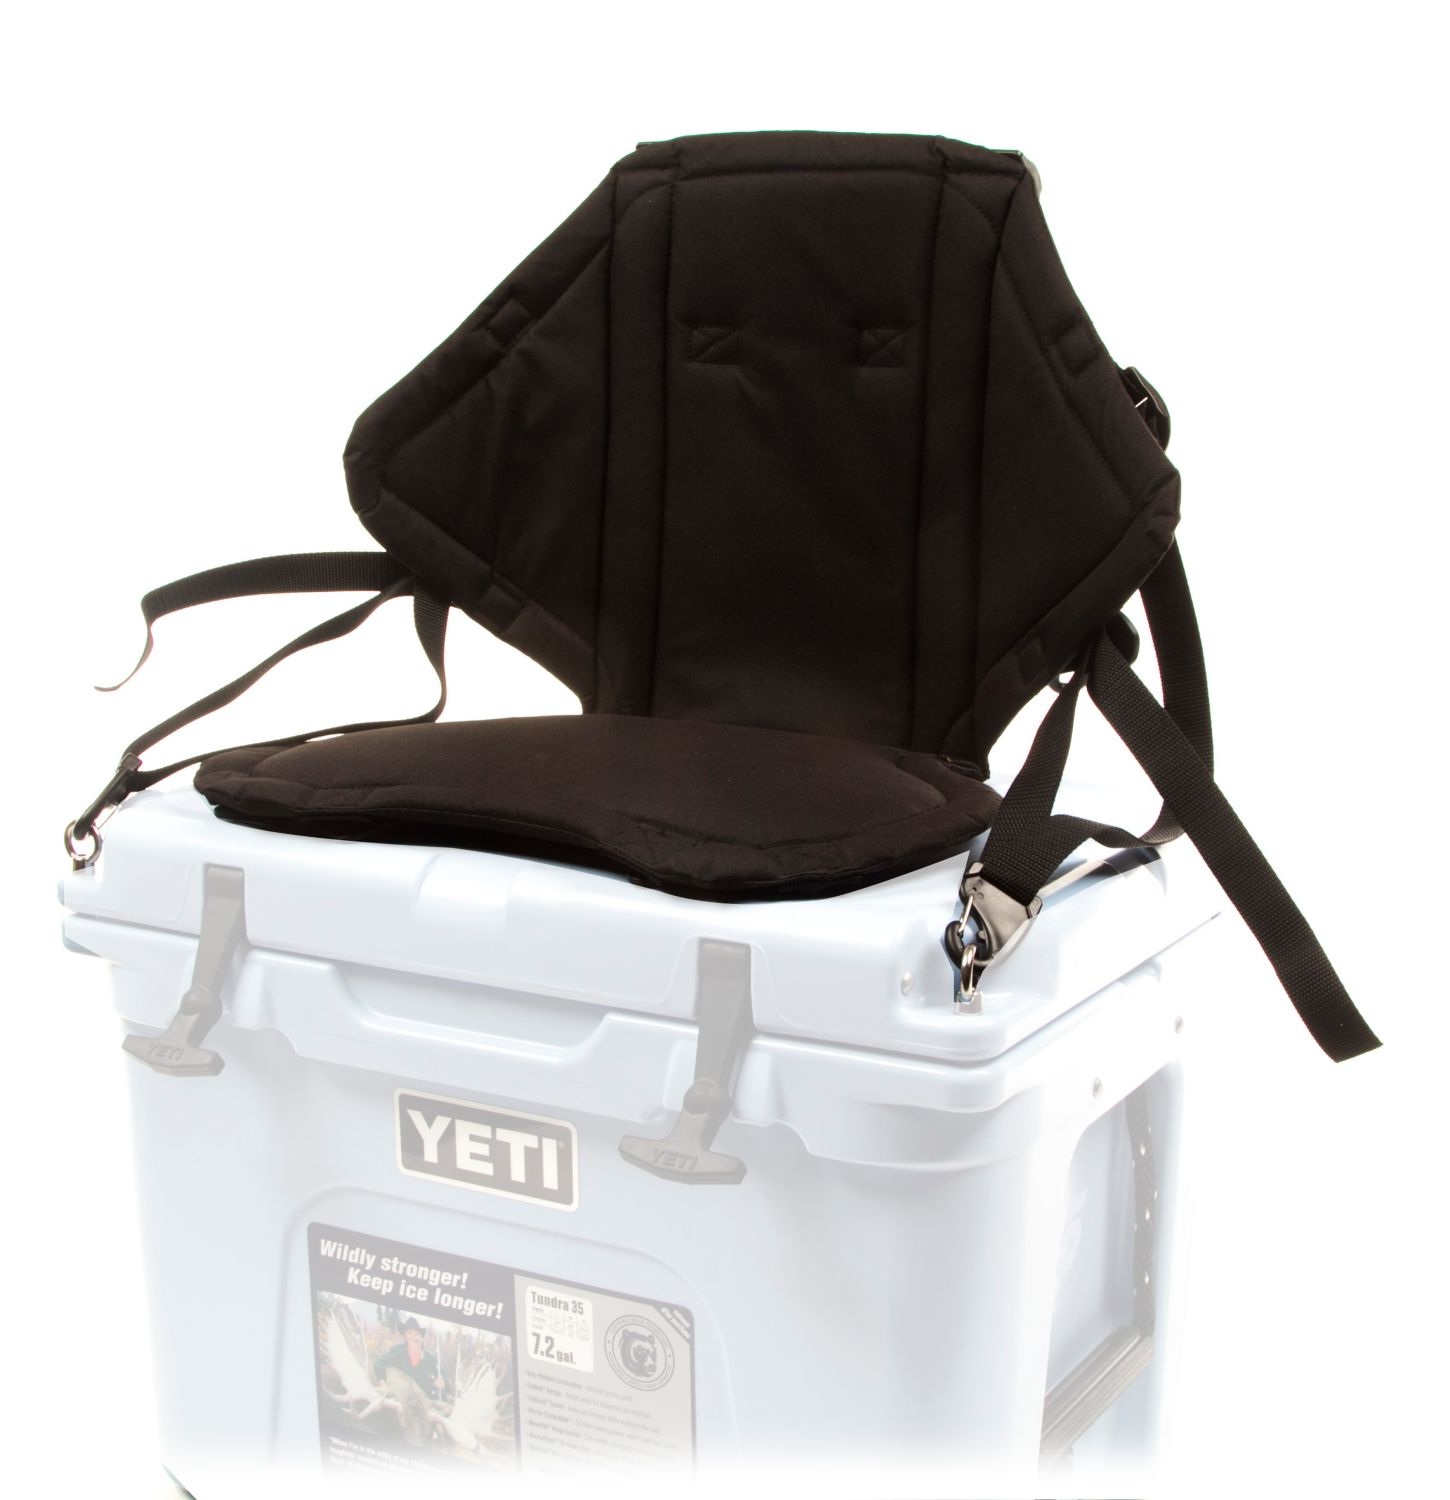 Kayaking Accessories Stores Drinks and Keeps Them Cool All Day Waterproof Cooler for Kayaking Compatible with Lawn-Chair Style Seats Skywin Kayak Cooler